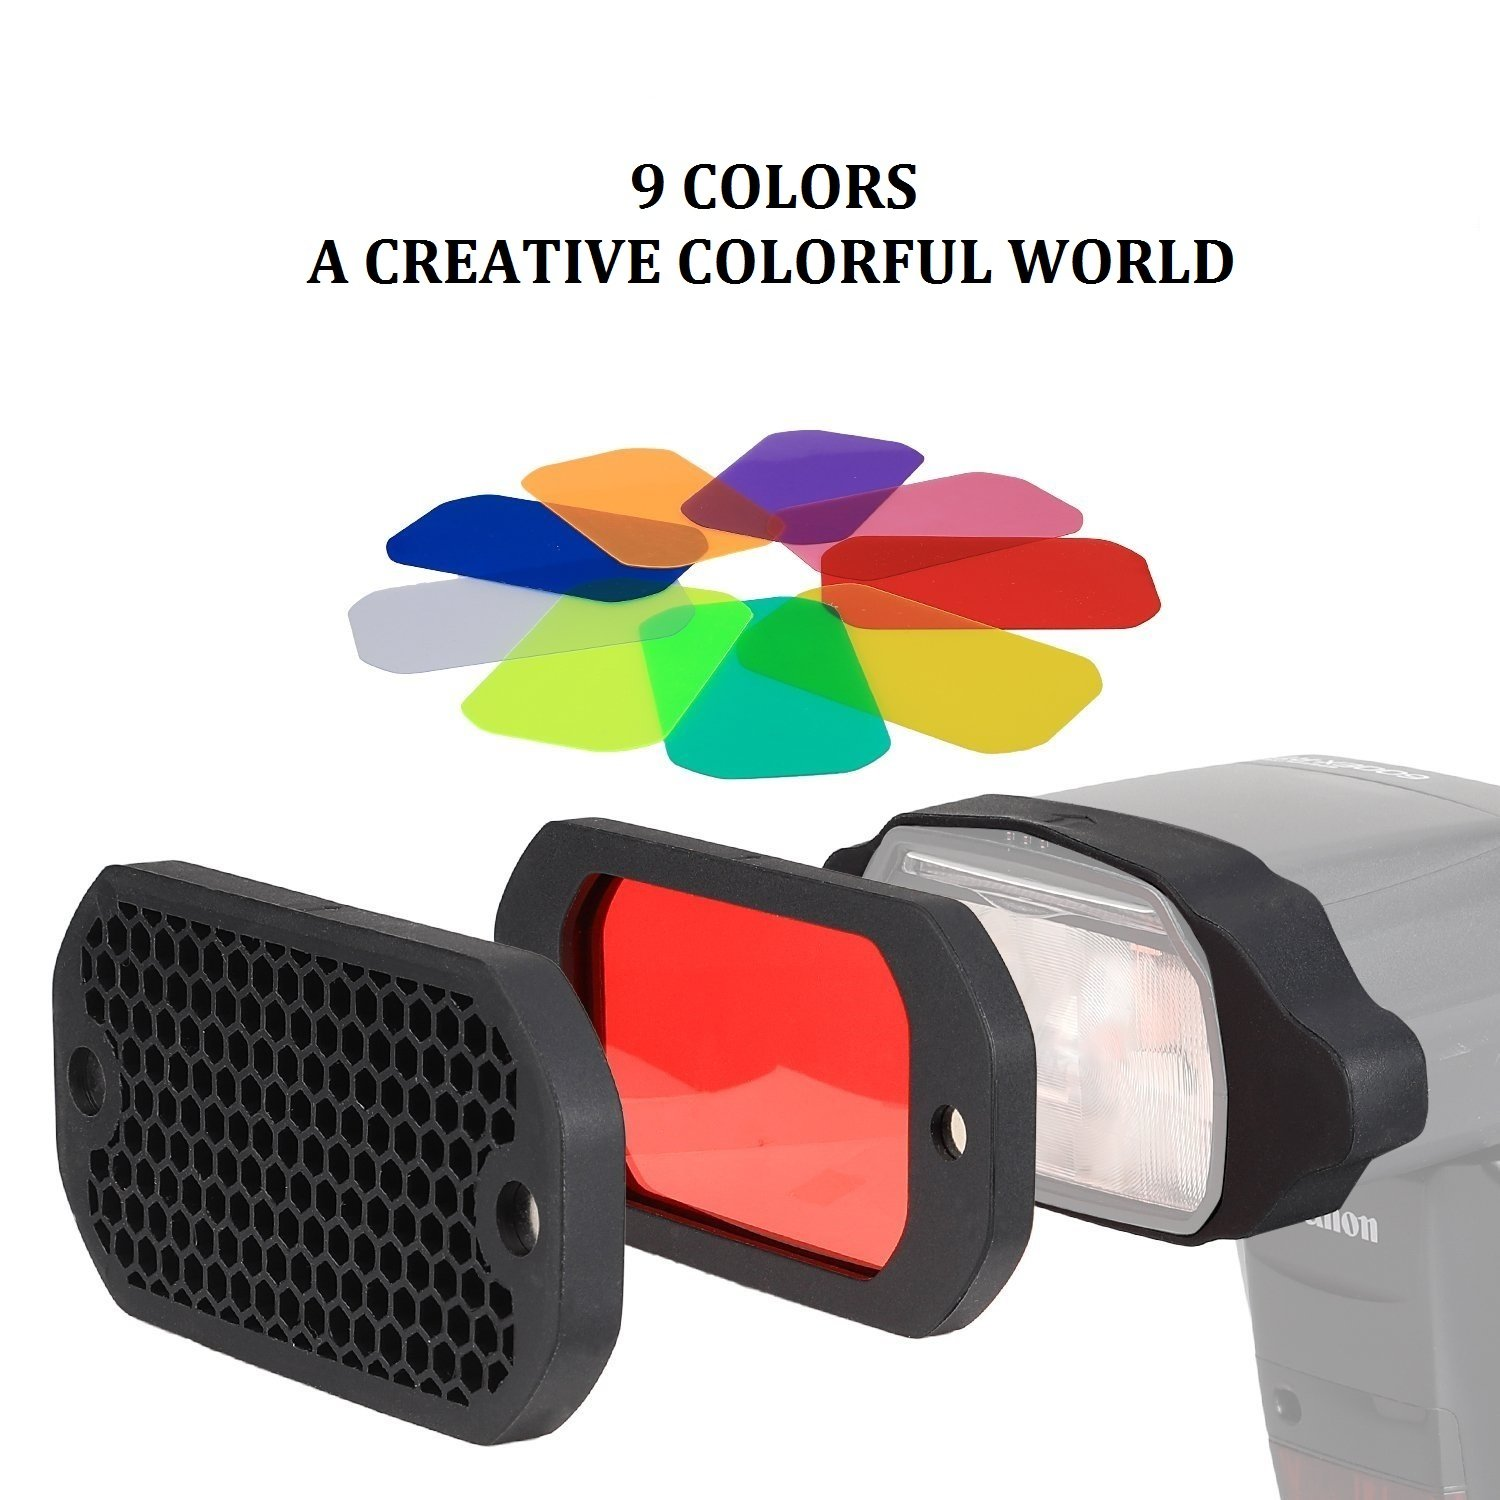 PHOLSY Honeycomb Grid Universal Flash Gels Lighting Filter Kit with Color Correction for Canon Nikon Sony Godox Yongnuo Camera Flash Light